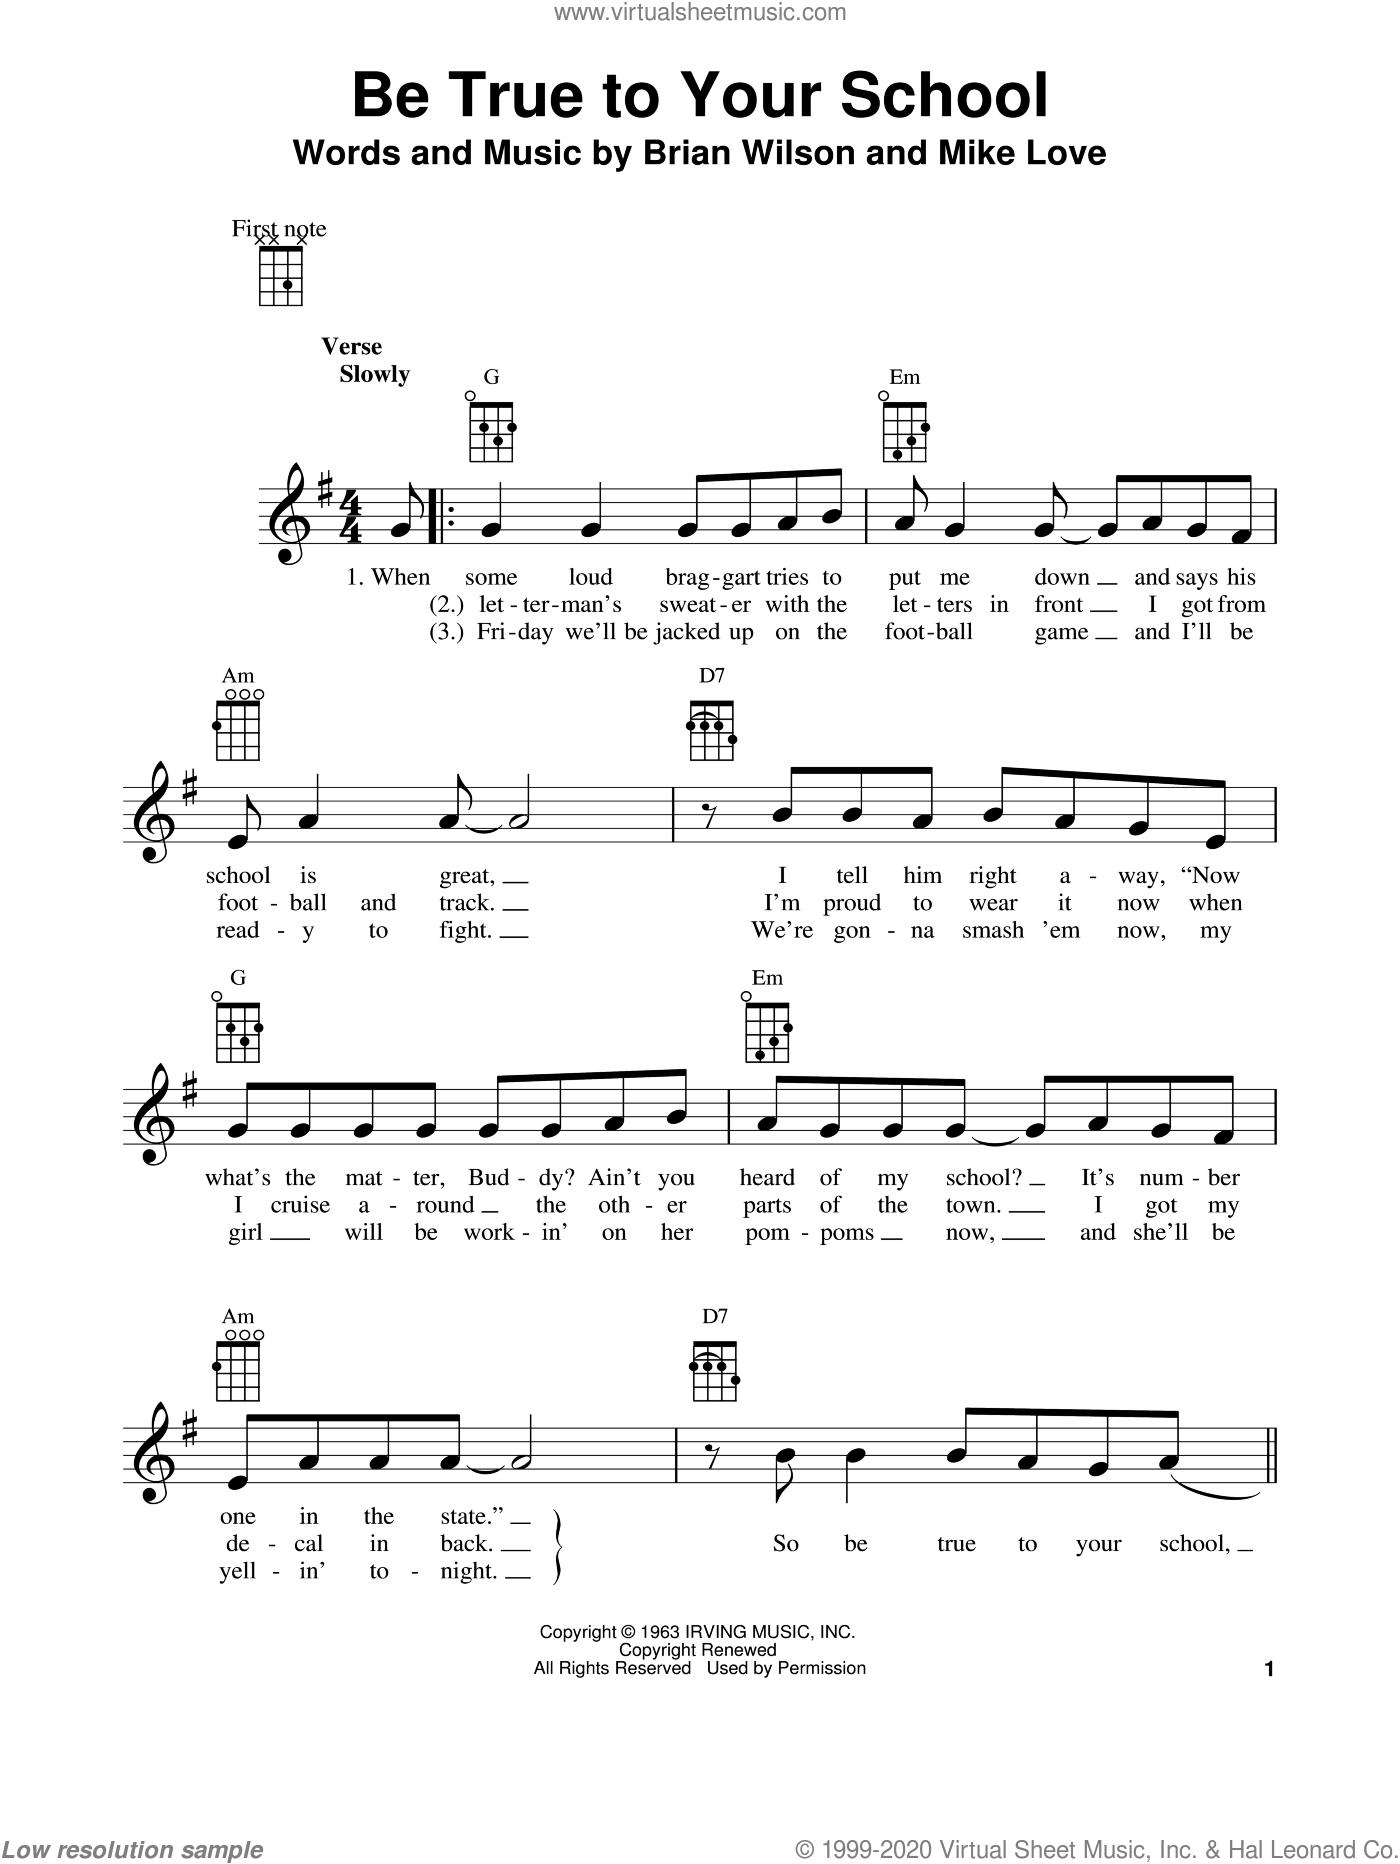 Be True To Your School sheet music for ukulele by Mike Love